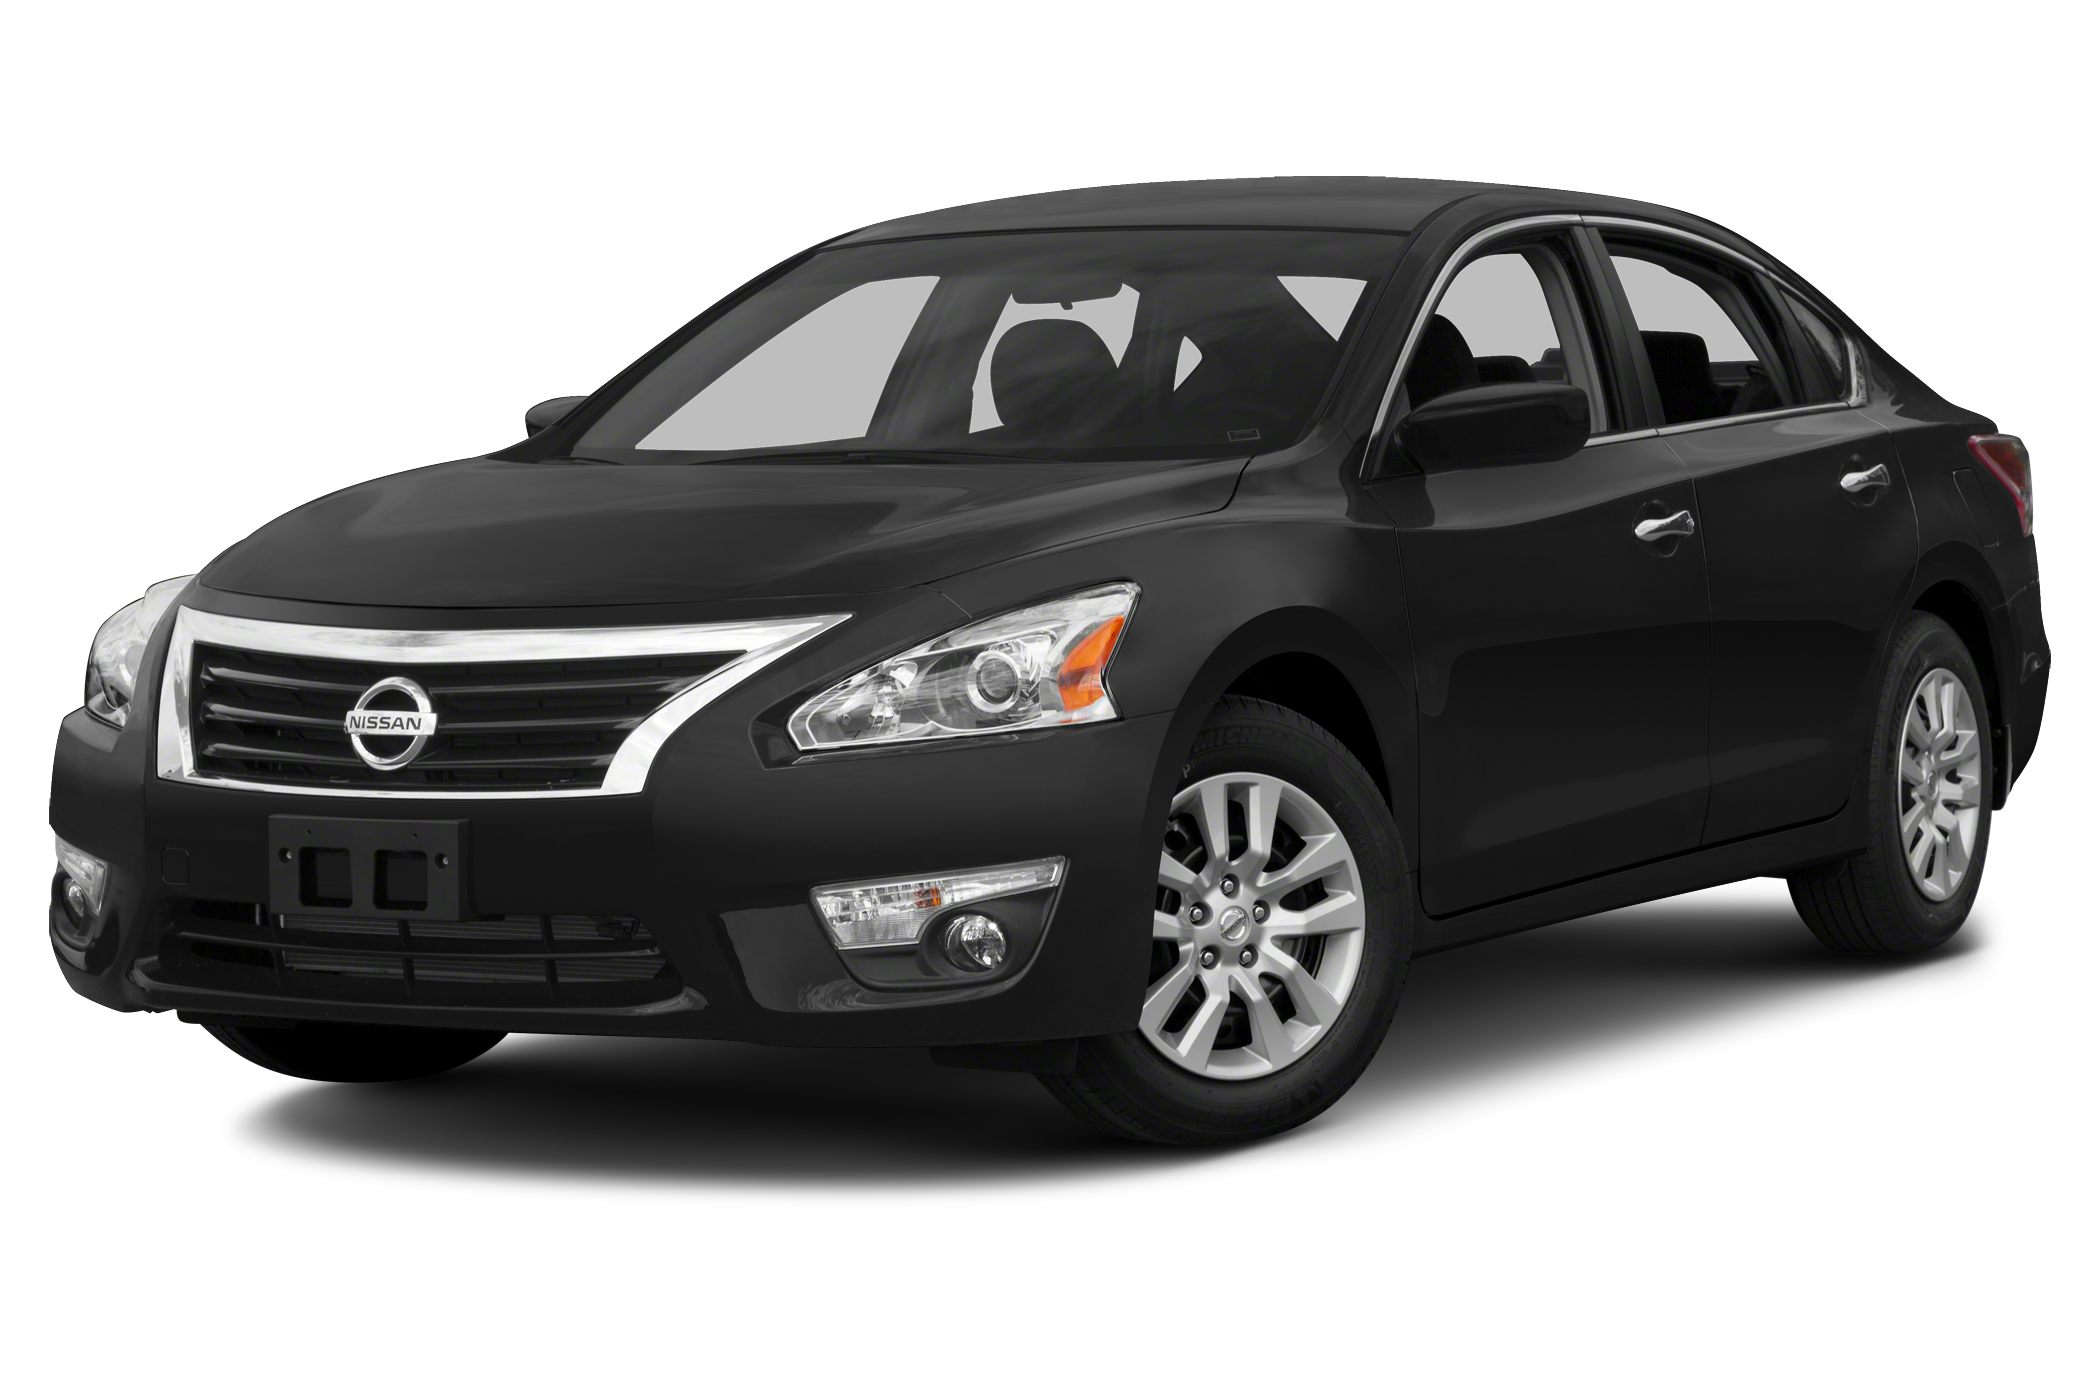 2015 Nissan Altima 2.5 S Sedan for sale in Indianapolis for $22,912 with 0 miles